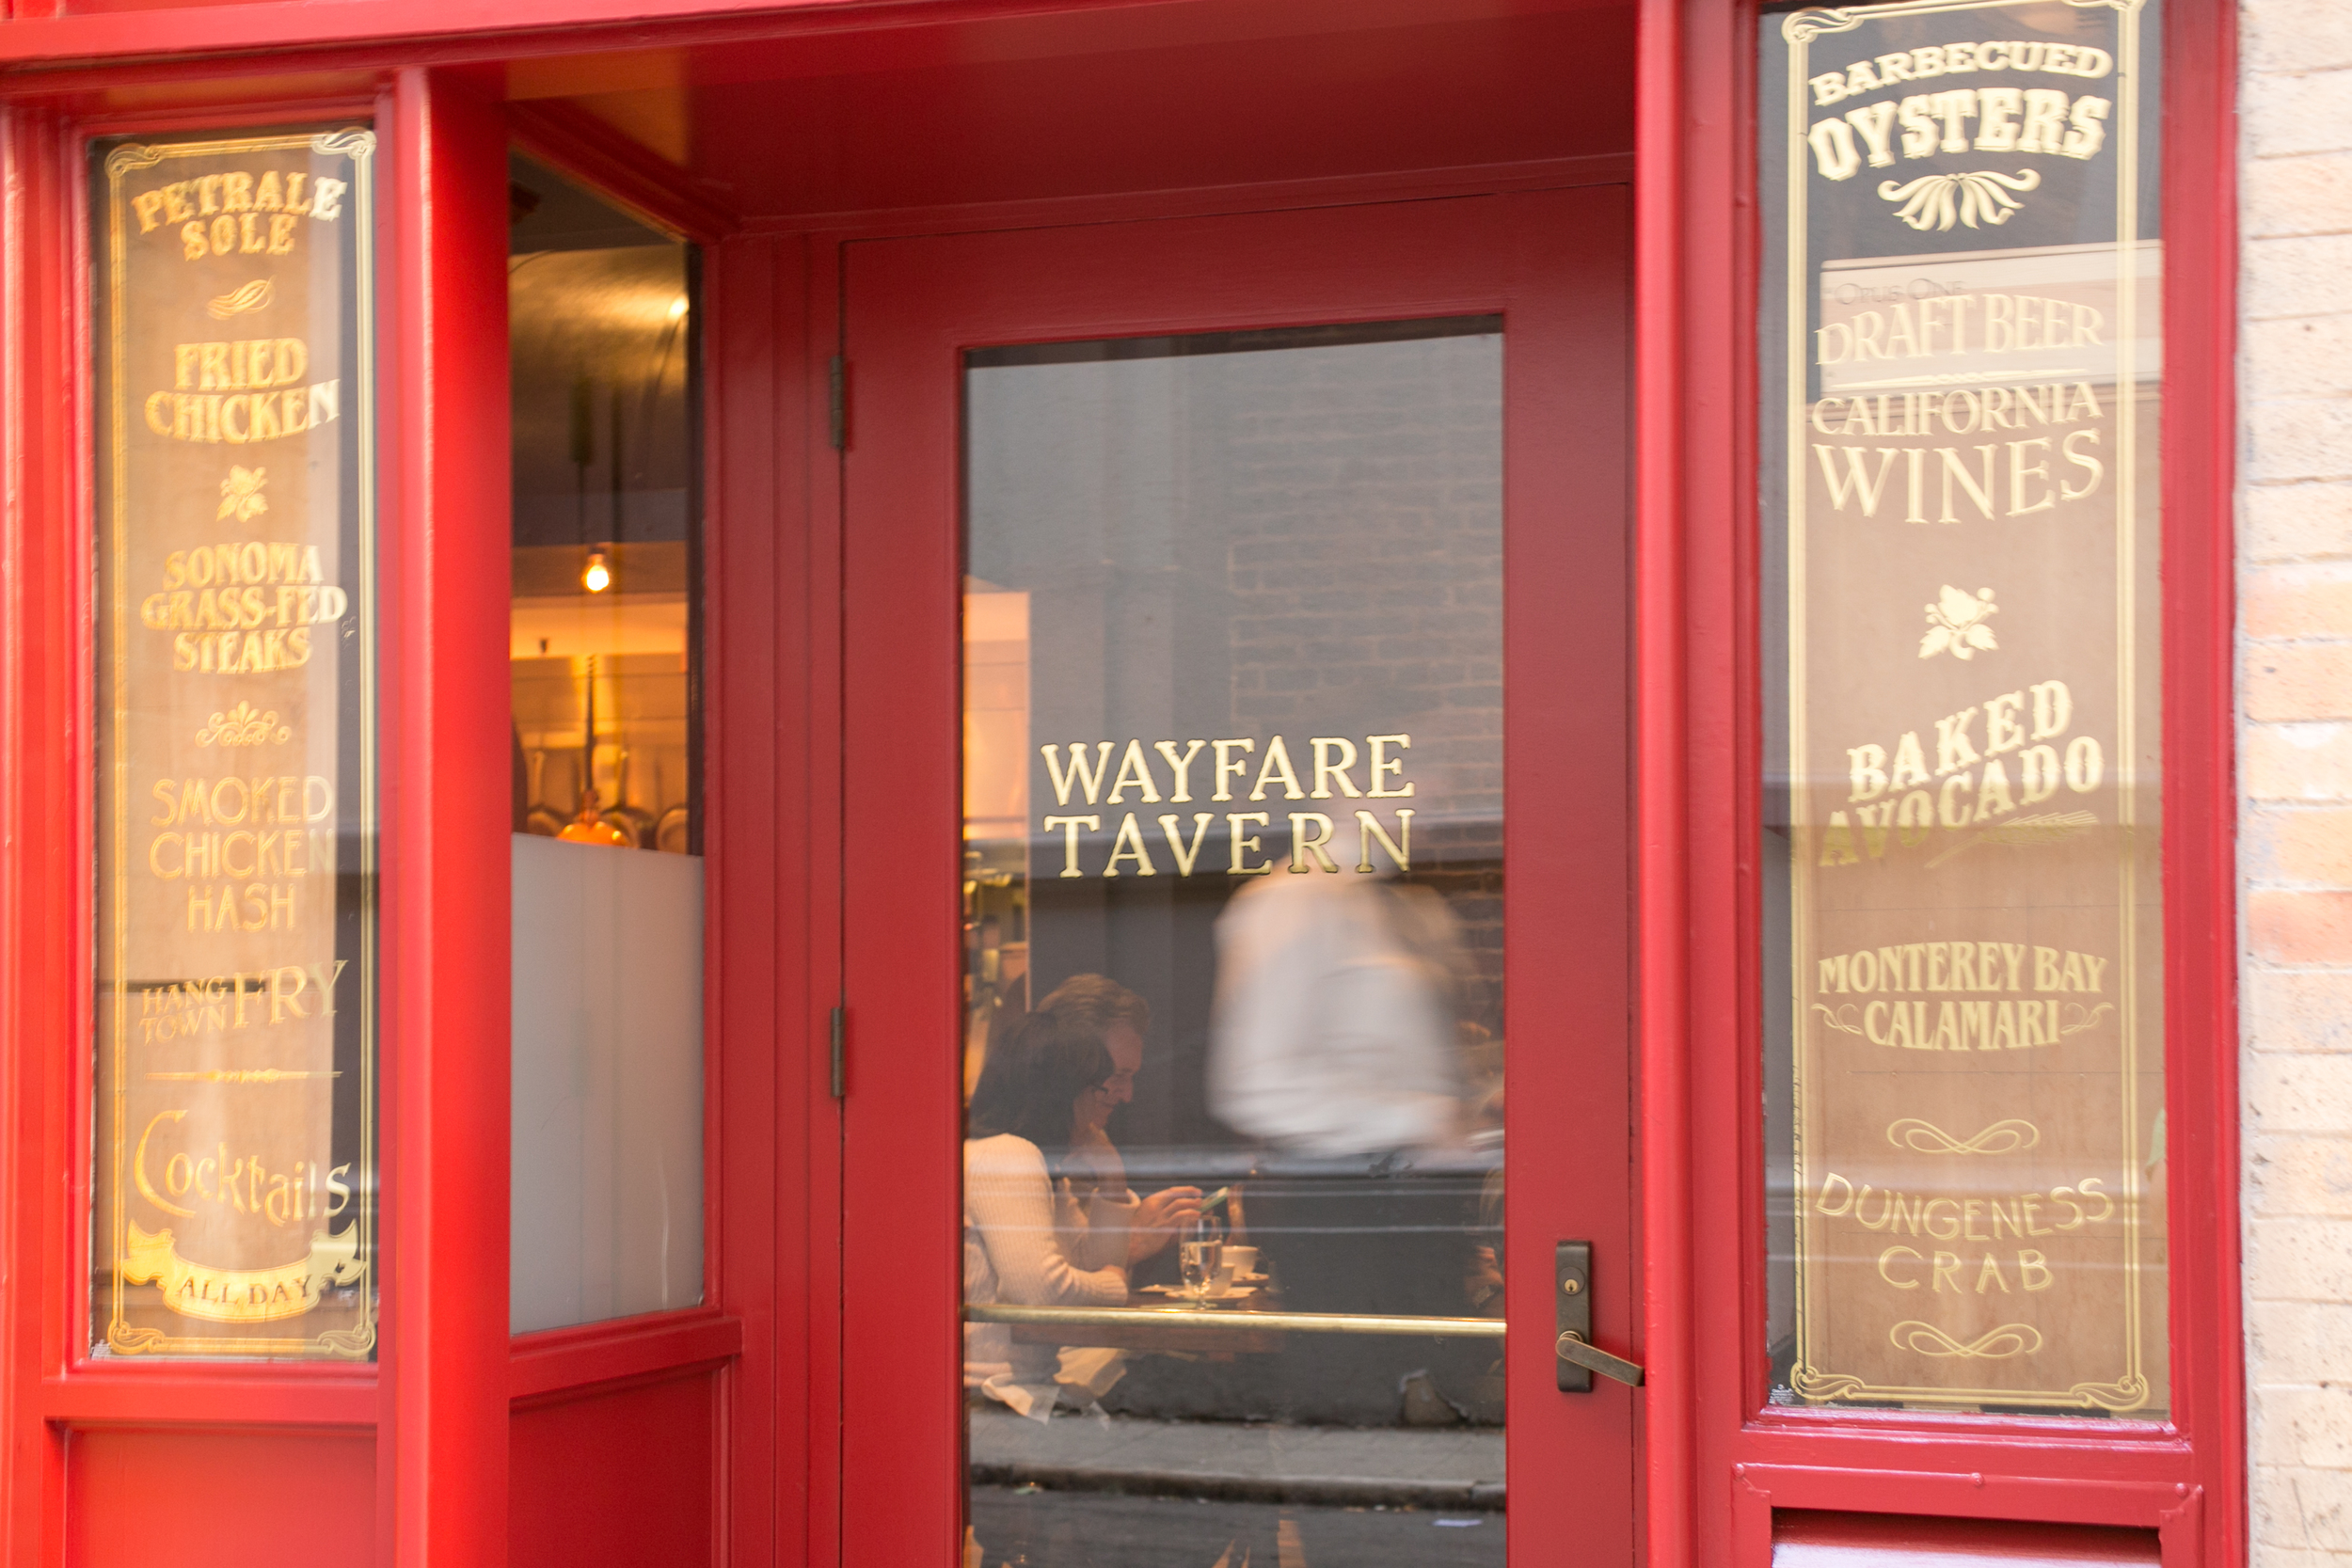 017017FinancialDistrict-MontgomerySt-WayfareTavern.jpg